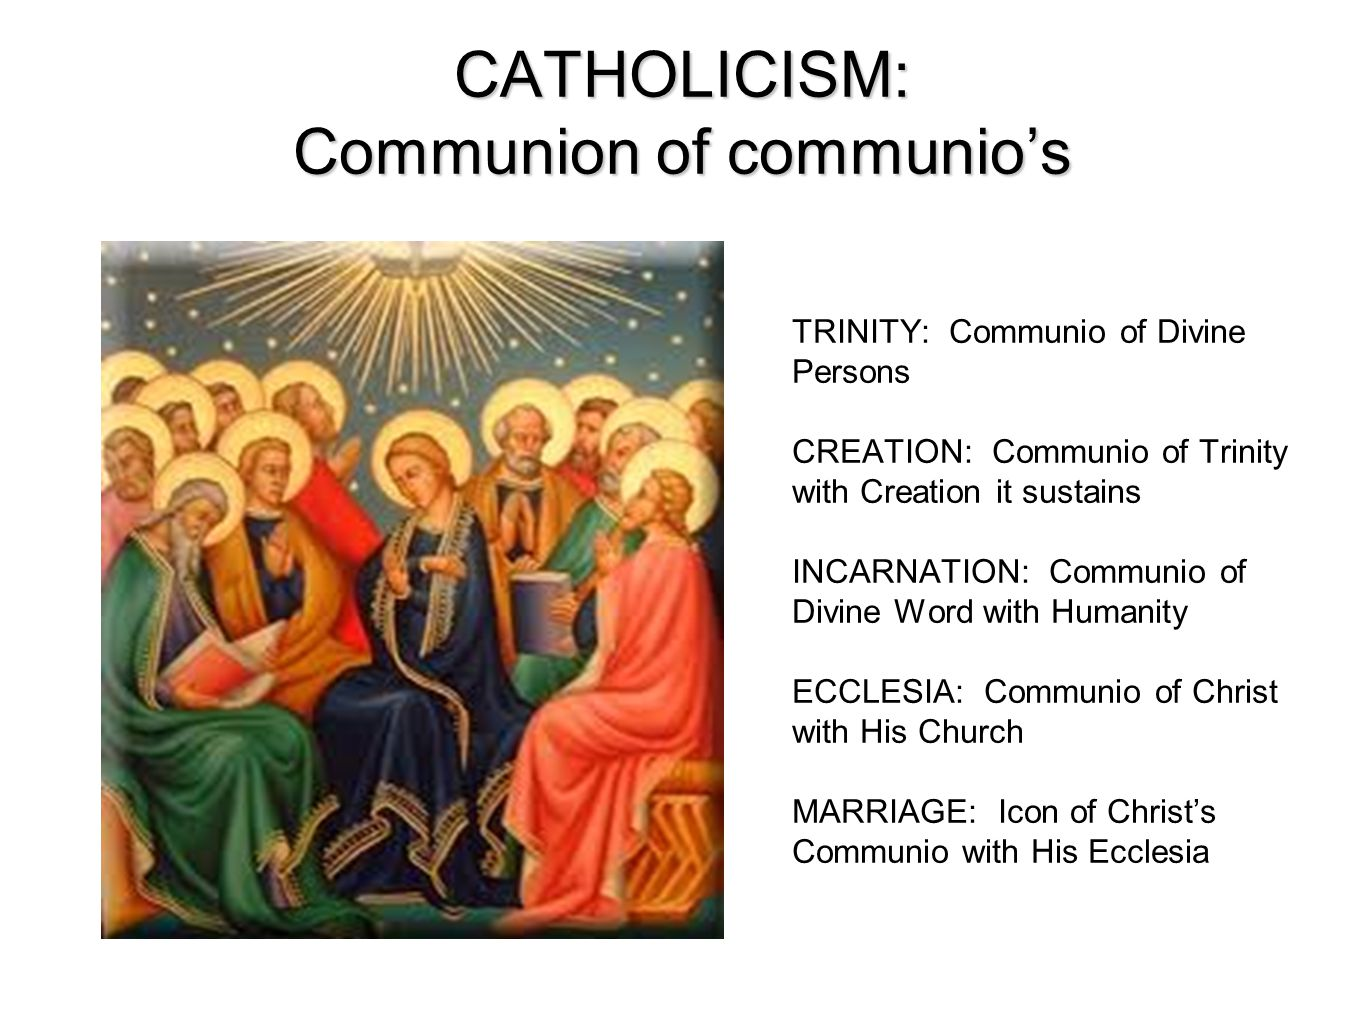 CATHOLICISM: Communion of communios TRINITY: Communio of Divine Persons CREATION: Communio of Trinity with Creation it sustains INCARNATION: Communio of Divine Word with Humanity ECCLESIA: Communio of Christ with His Church MARRIAGE: Icon of Christs Communio with His Ecclesia